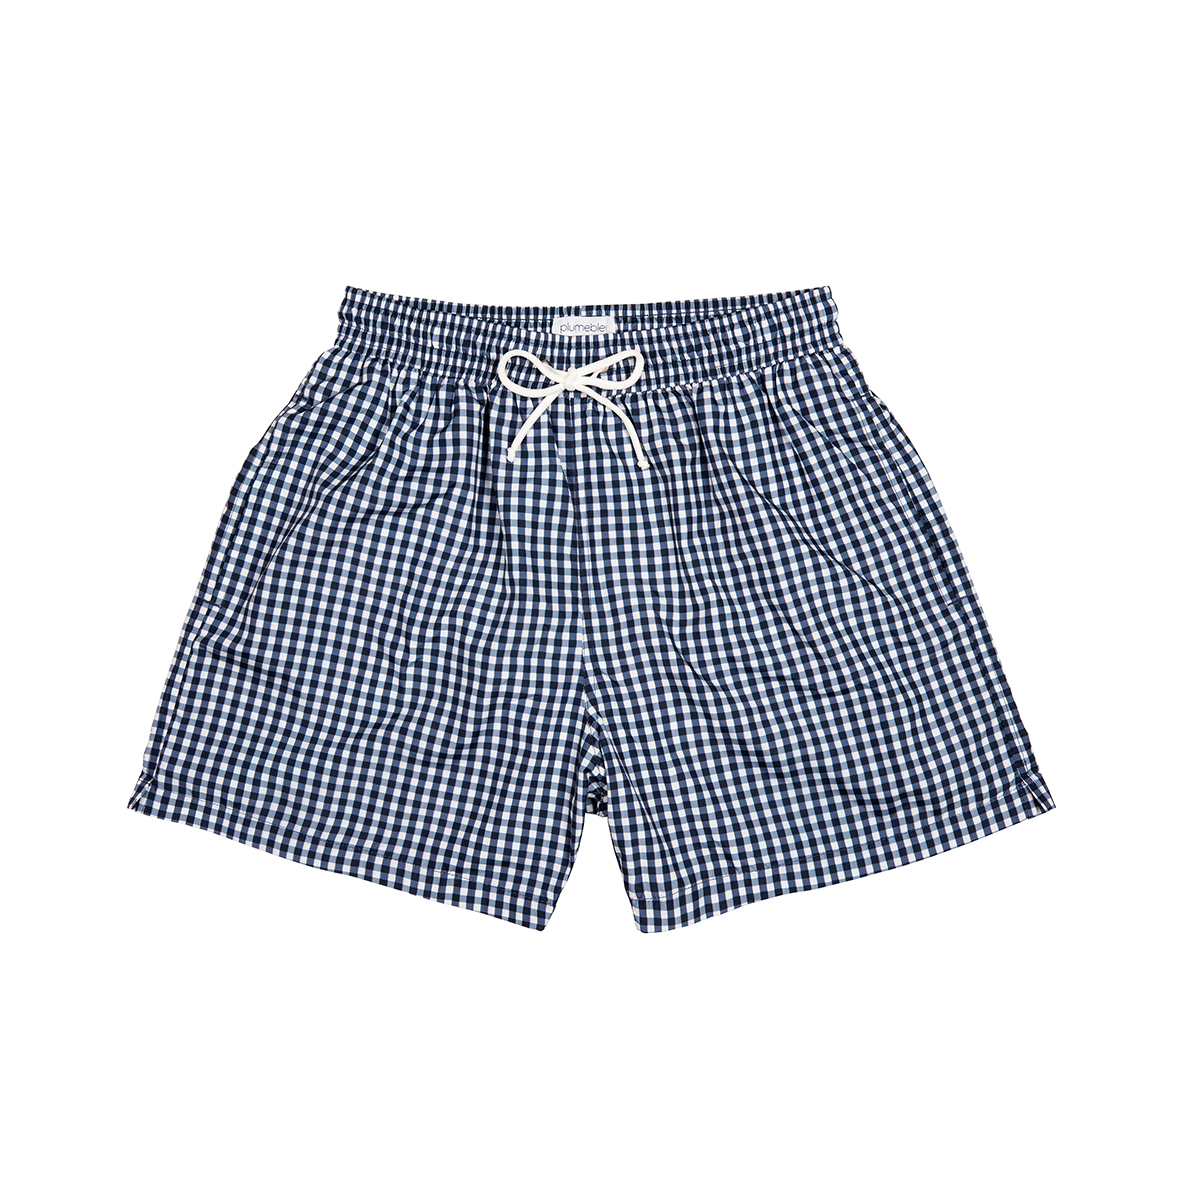 Plumebleu Men's Gary Swim Short in Midnight Blue Gingham